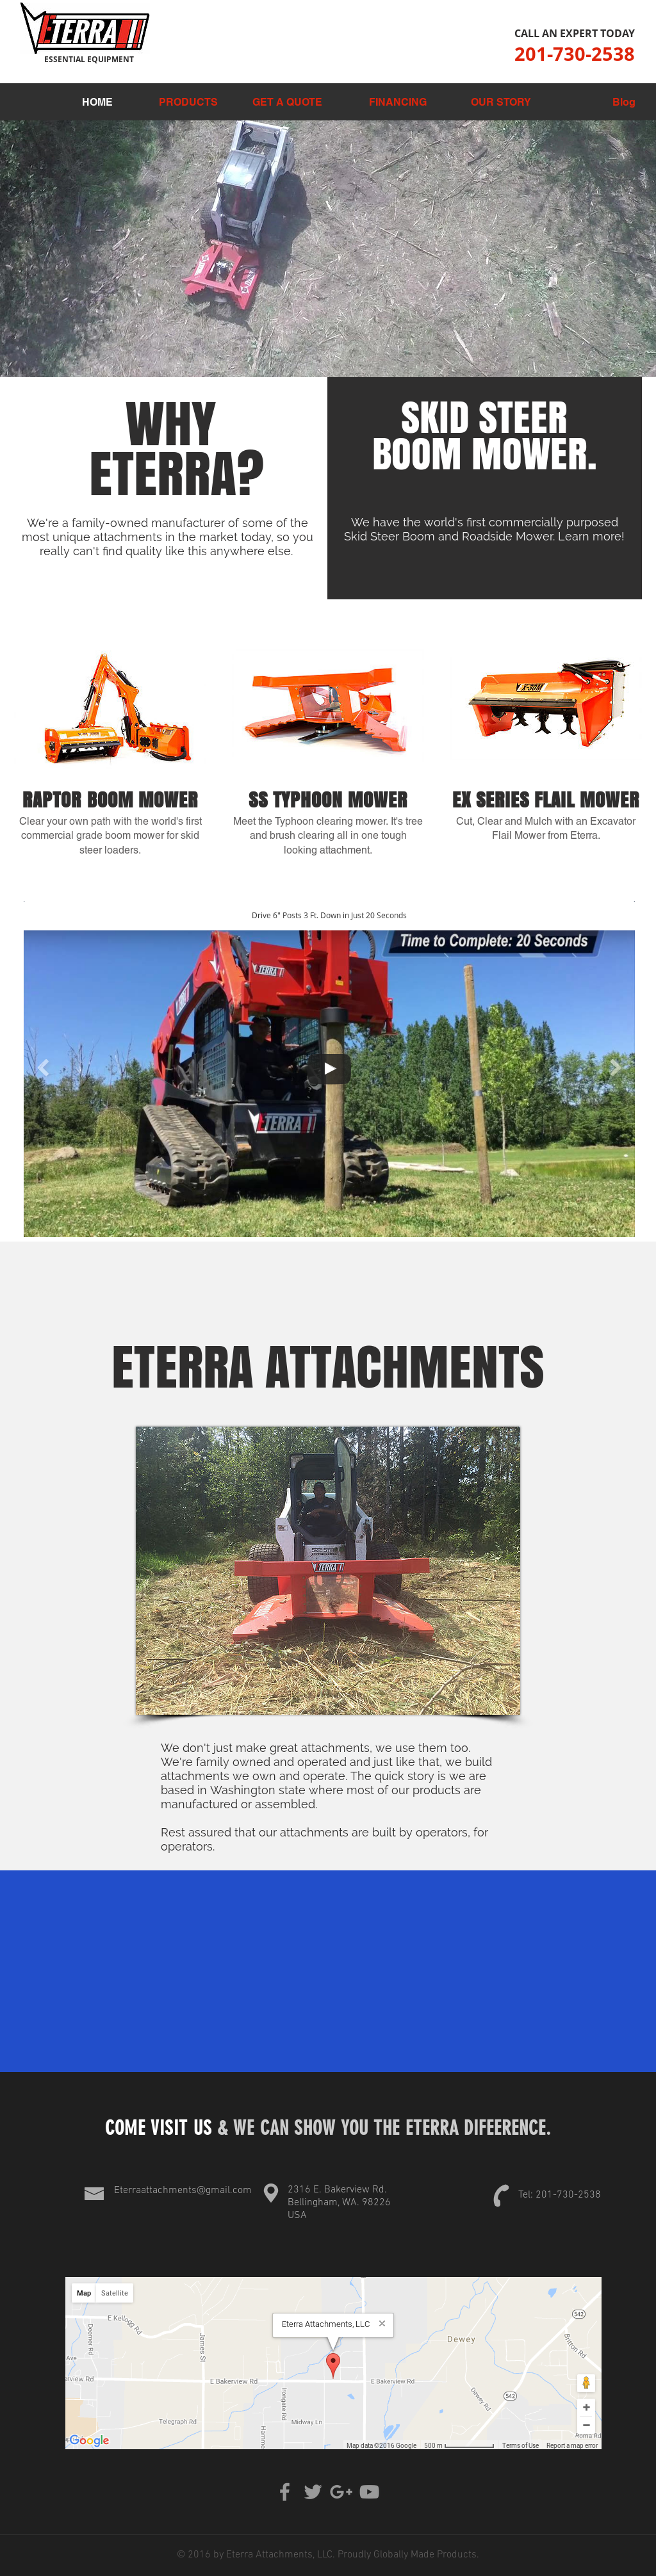 Eterra Attachments Competitors, Revenue and Employees - Owler